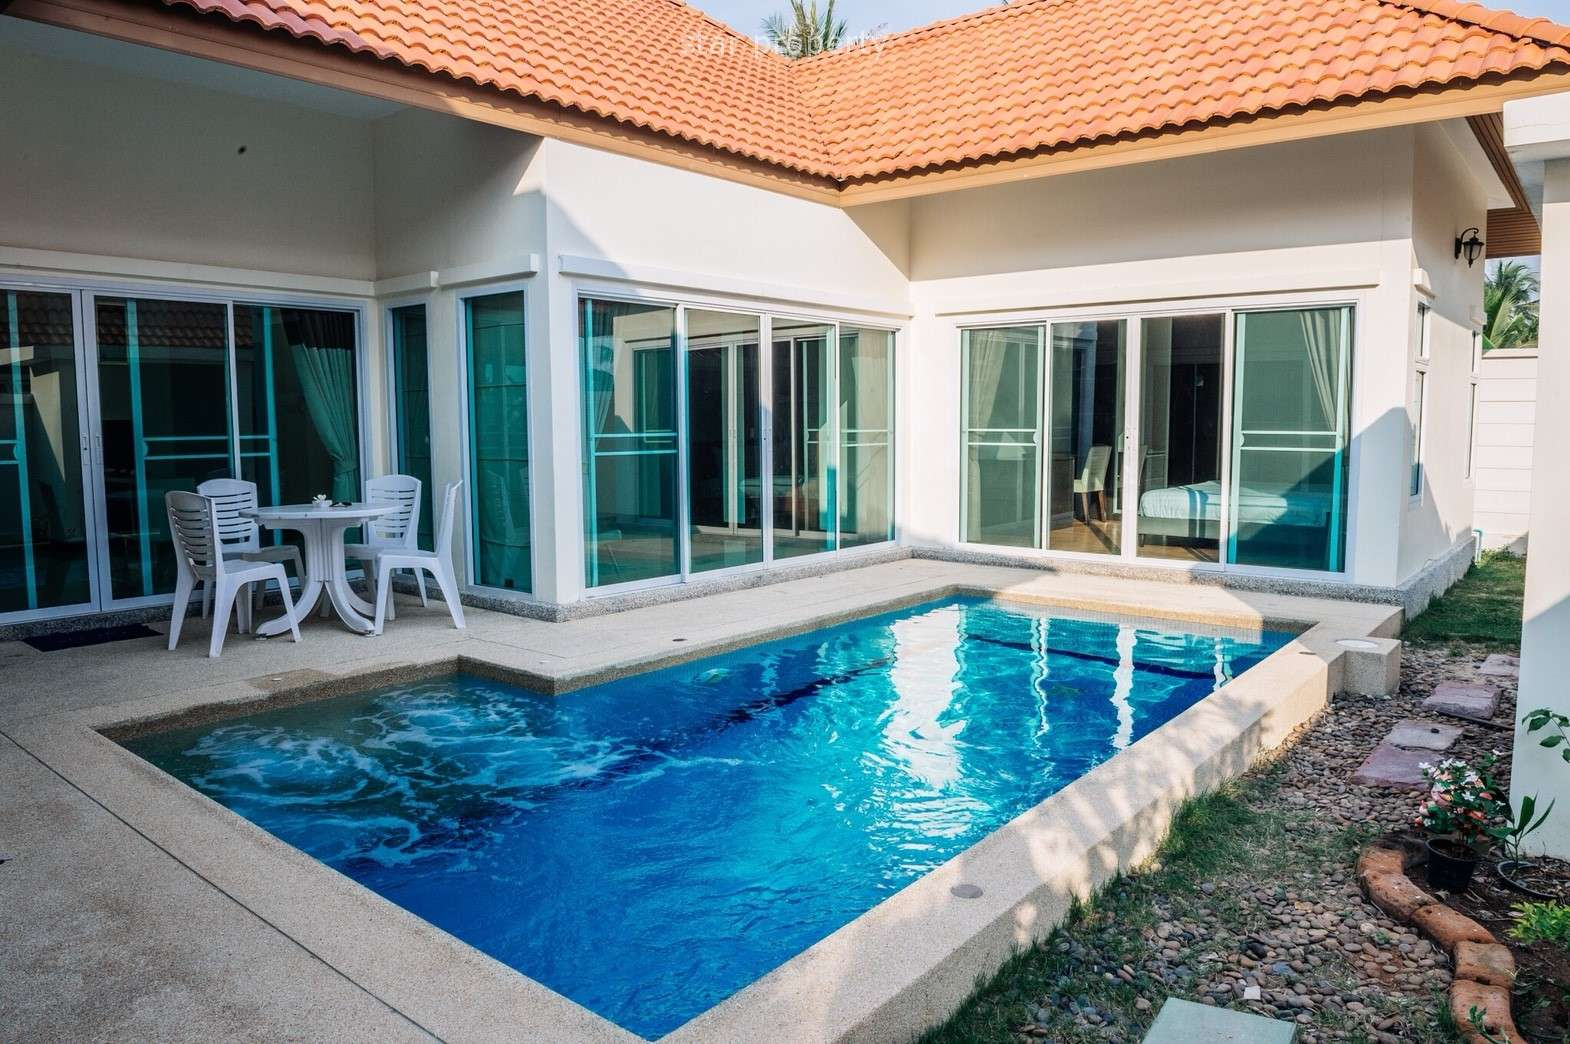 The Legacy Pool Villa Hua Hin Soi 70